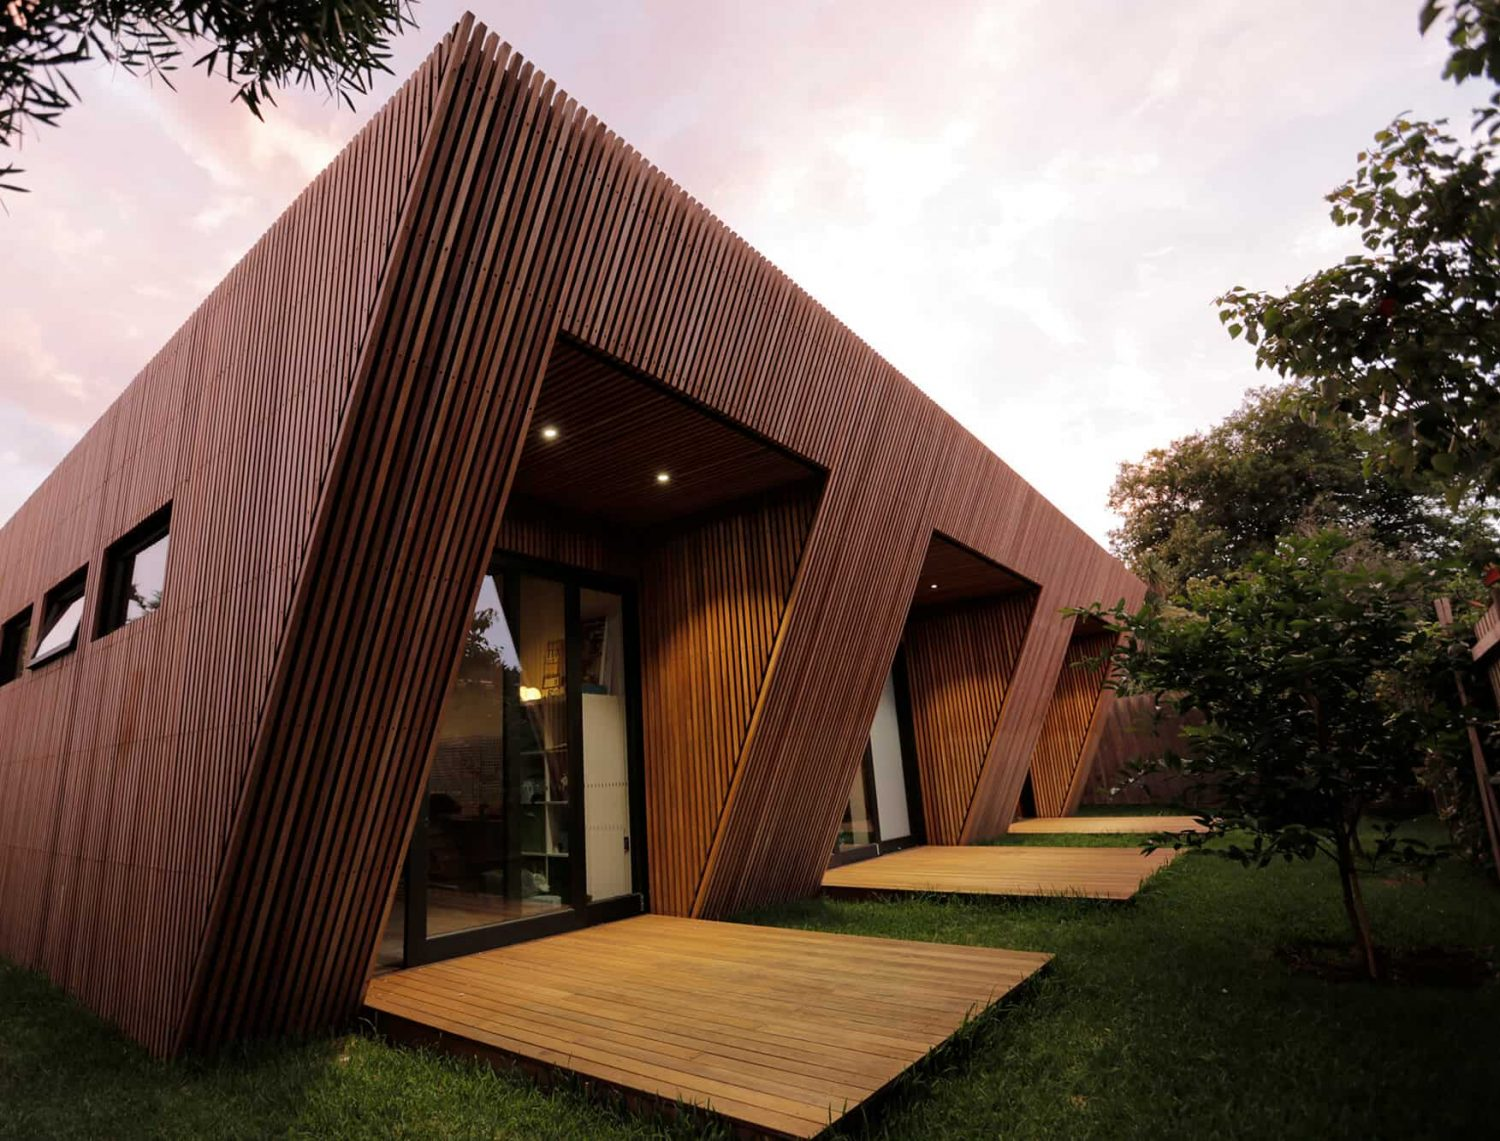 Fusion House by Dankor Architecture